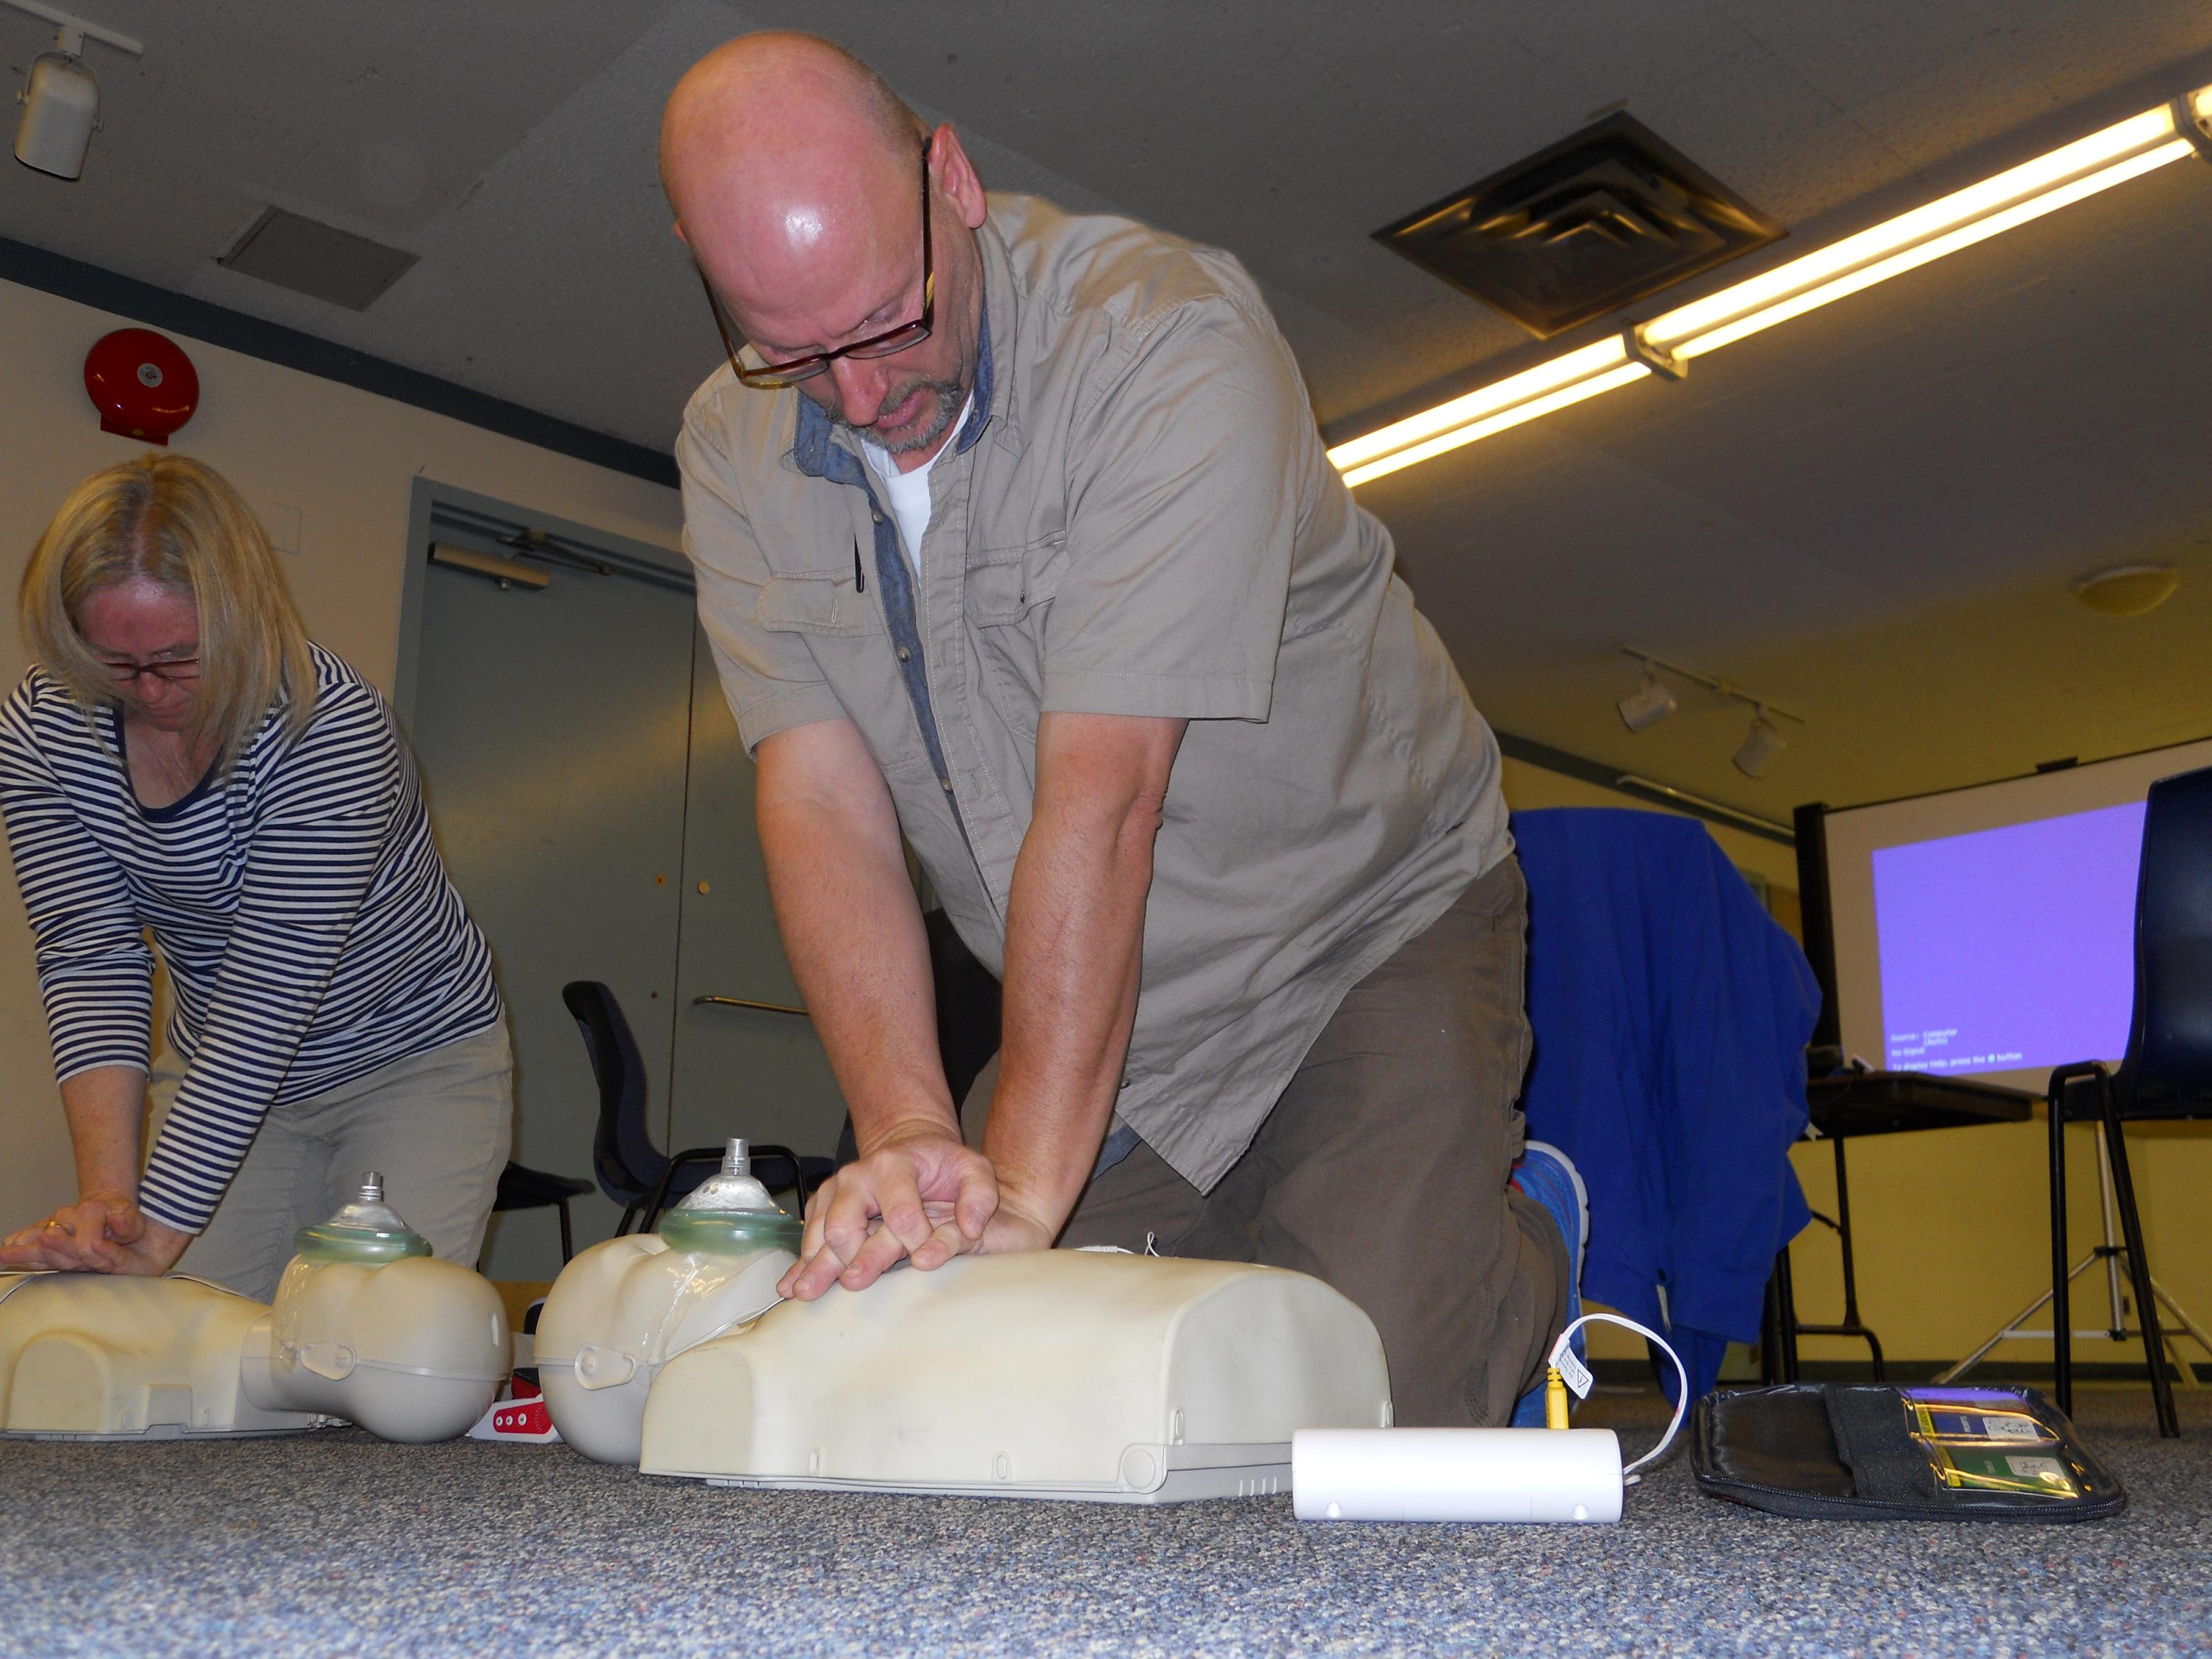 Royal Canadian Legion Branch 88 is actively involved in providing CPR training, including the use of defibrillators, for all staff. At present, there are twelve who recently three-year Red Cross Certification. Shown here. Andrew Richards is one of the staff who took the CPR course. Branch 88 has also purchased two AED's (defibrillators) for installation in the Lounge and at Legion House. Additional training courses could possibly be offered to Branch members. The staff and other members who successfully completed the 4-hour CPR course are: Grace Gonzalez, Terri Zazulak, Phiilis Douglas, Cyndy MacDonald, Elaine MacDonell, Andrew Richards, Grant Armstrong, Maureen Jorgensen, Donna Richards, Lamont Buchanan, Dorothy Piton, Jim MacDonald